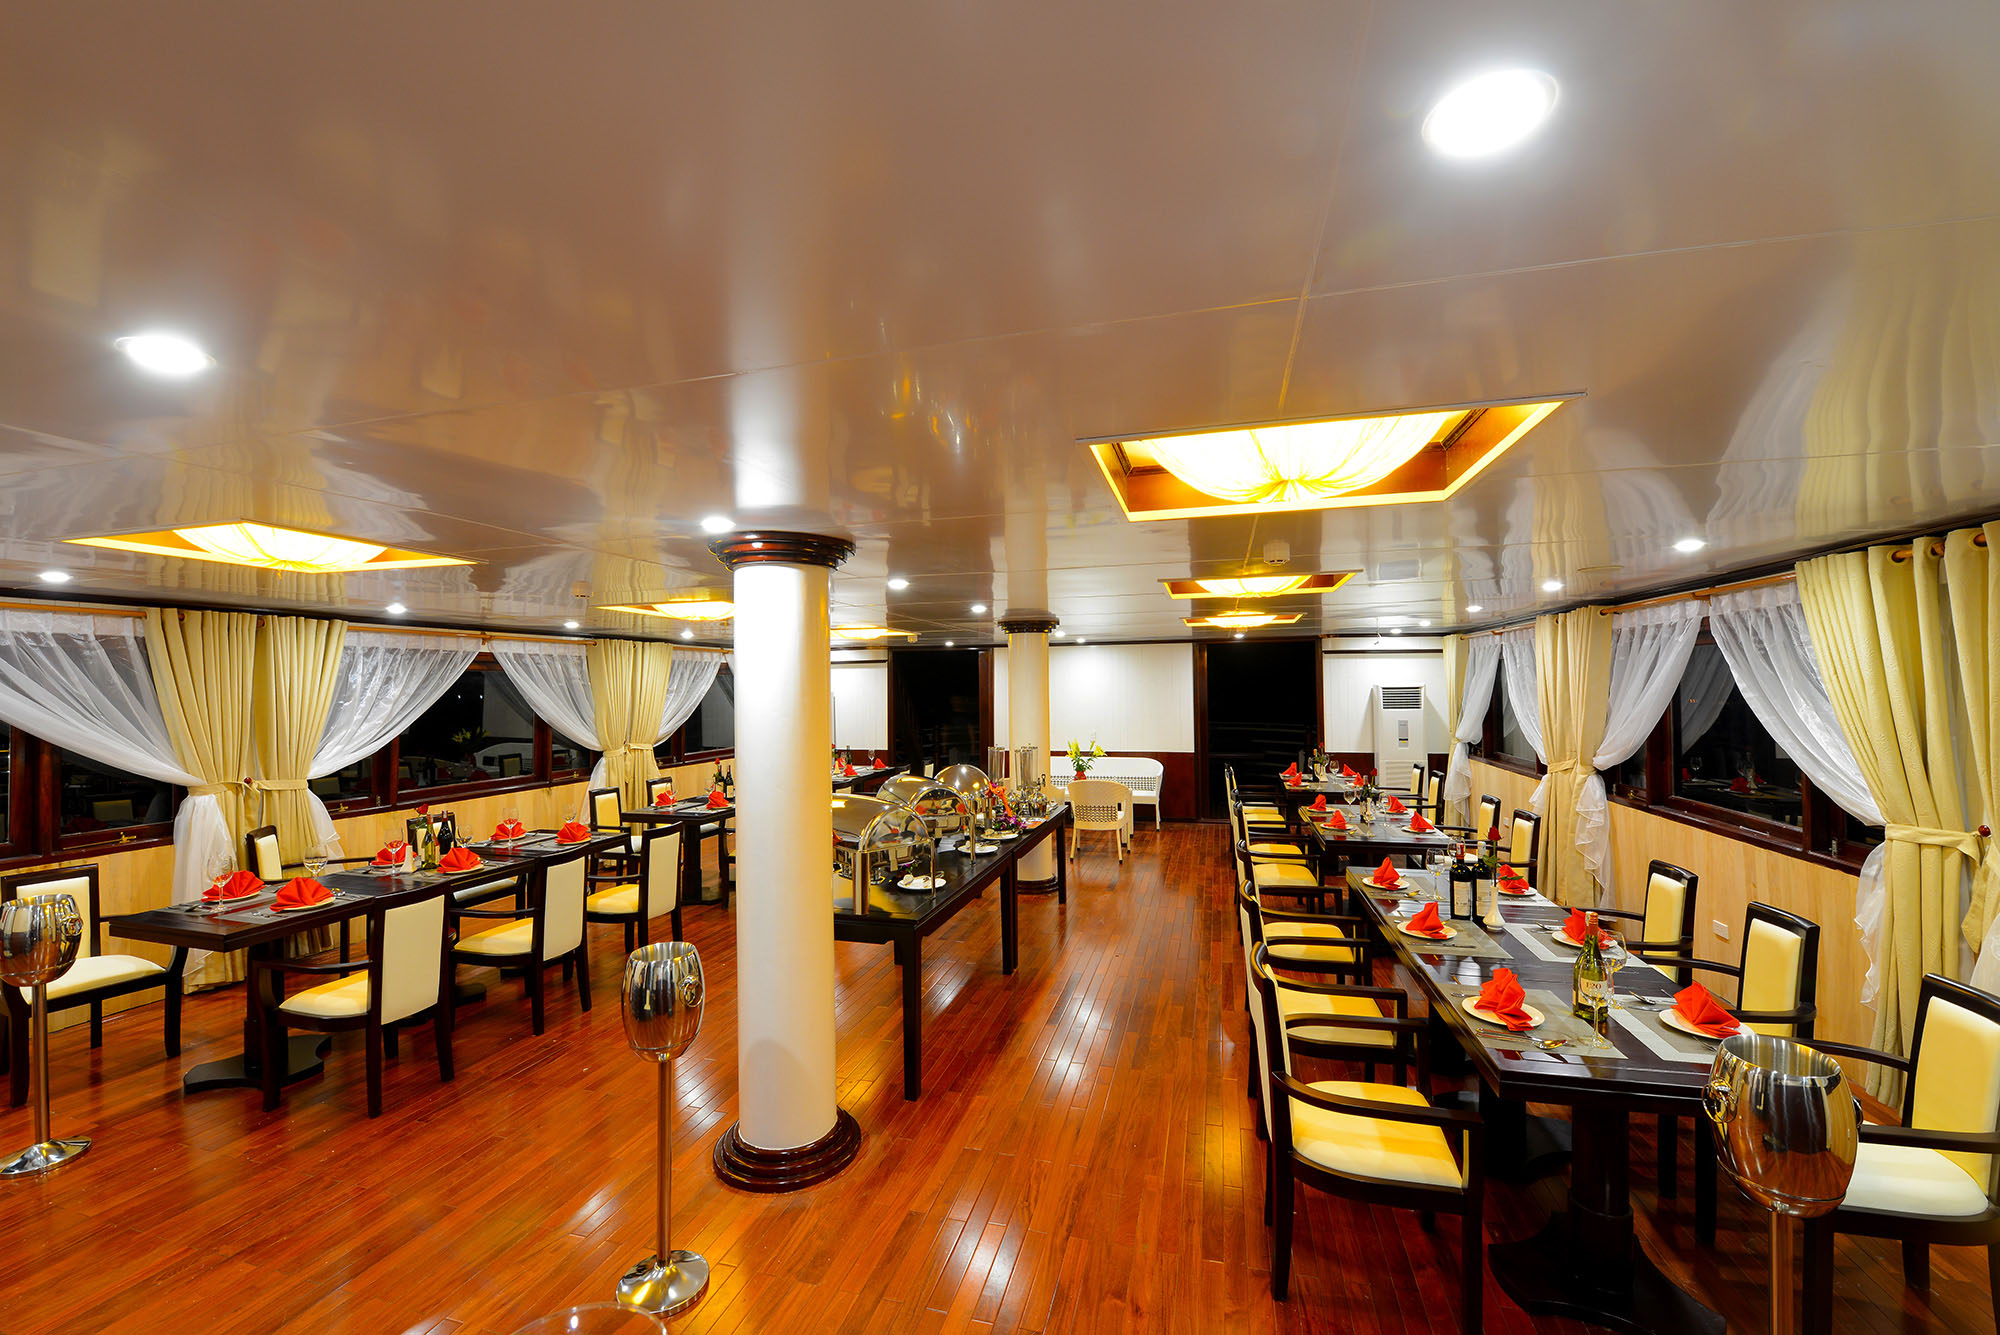 Restaurant Supply Long Island Silversea Cruise 3 Days 2 Nights Vietnam Discovery Travel